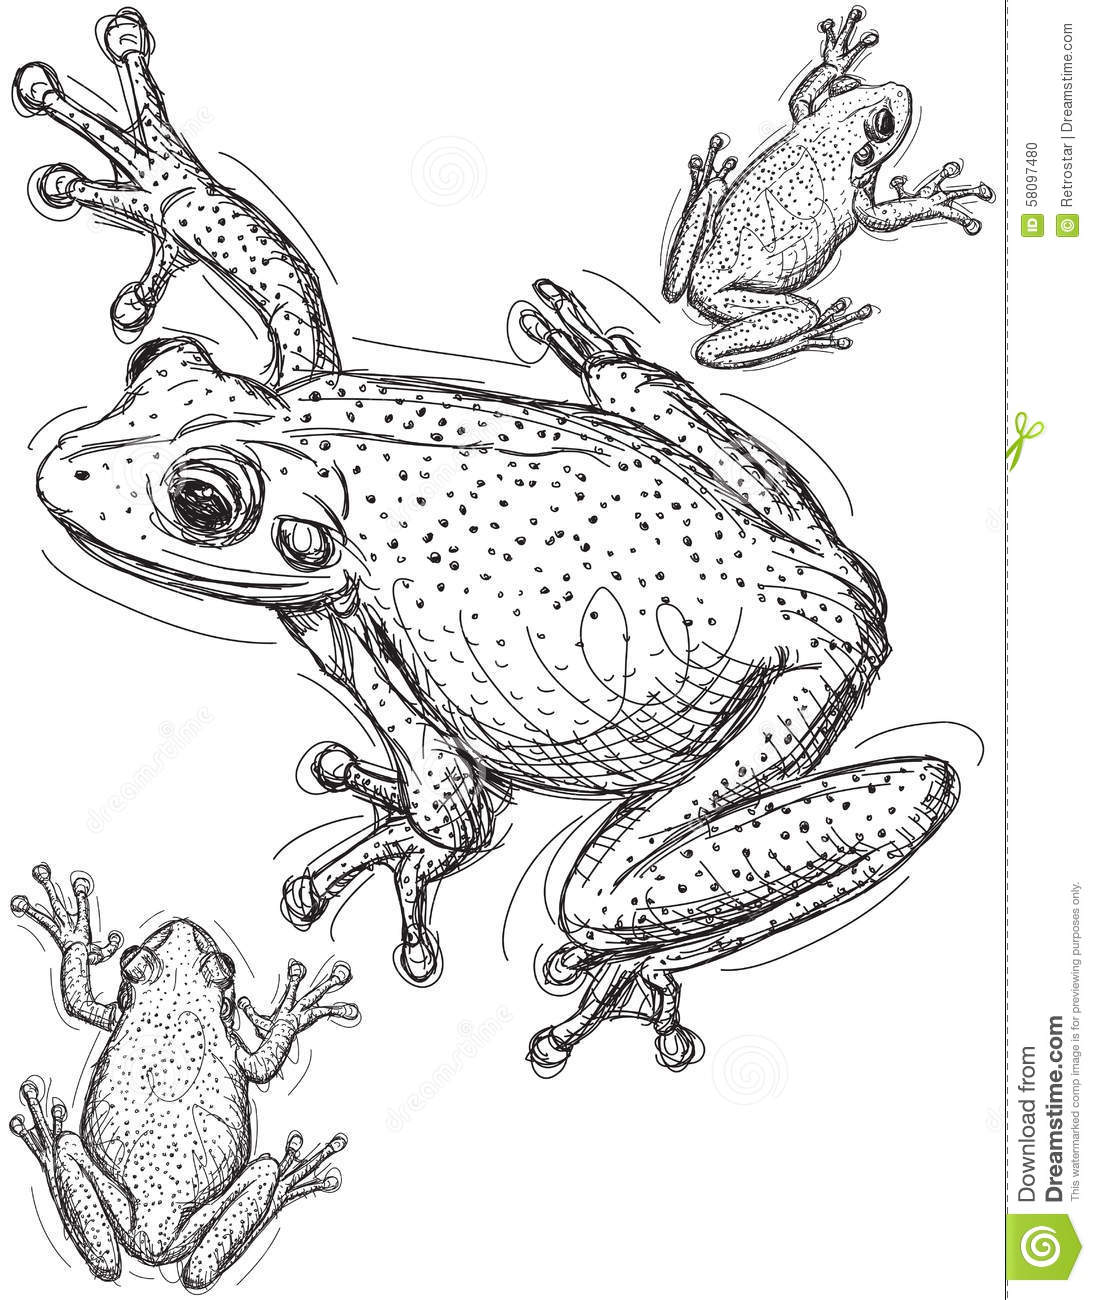 Line Drawing Frog : Frog sketches stock vector image